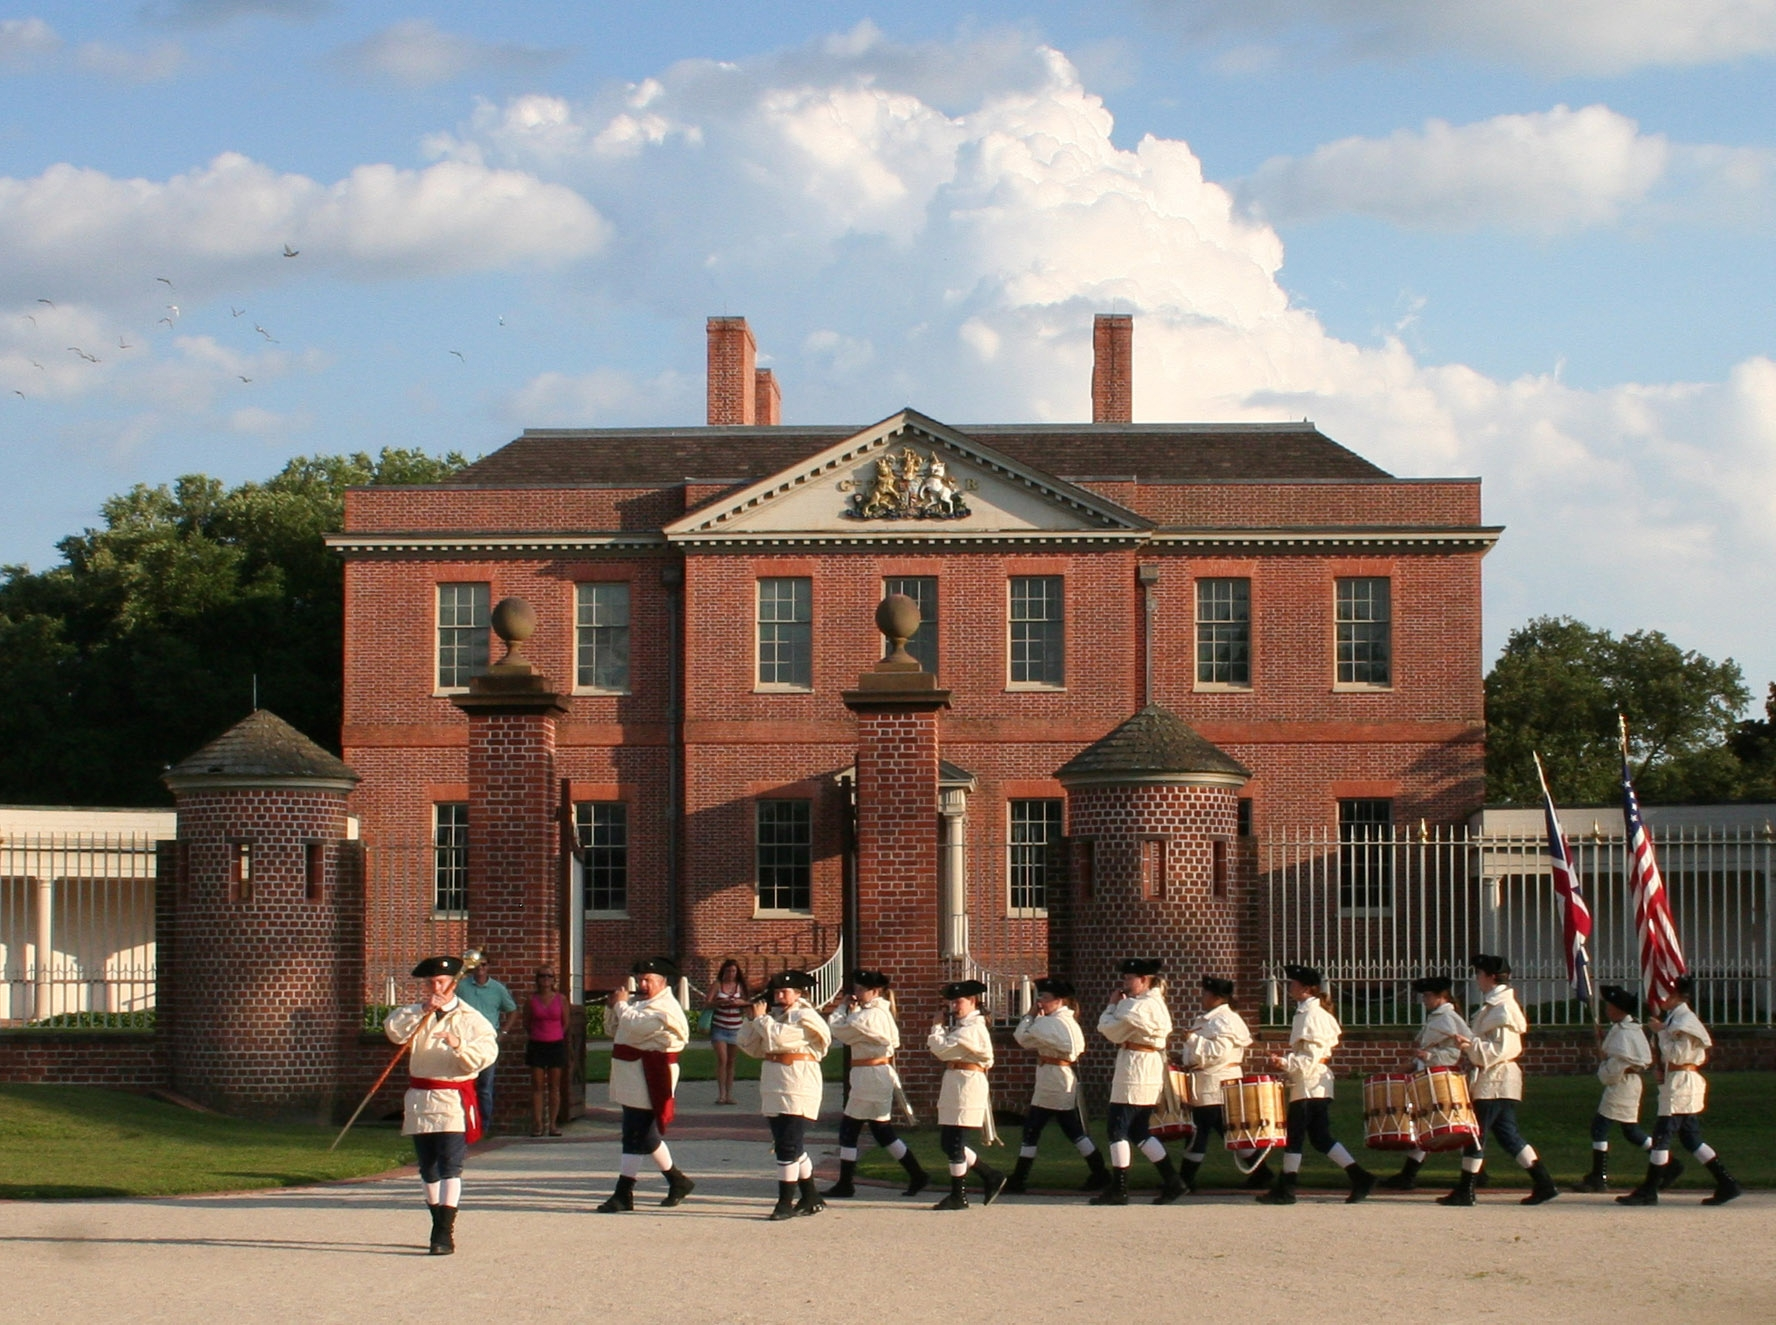 Tryon Palace is one of the major attractions in New Bern, North Carolina. The town is celebrating its 300th anniversary.